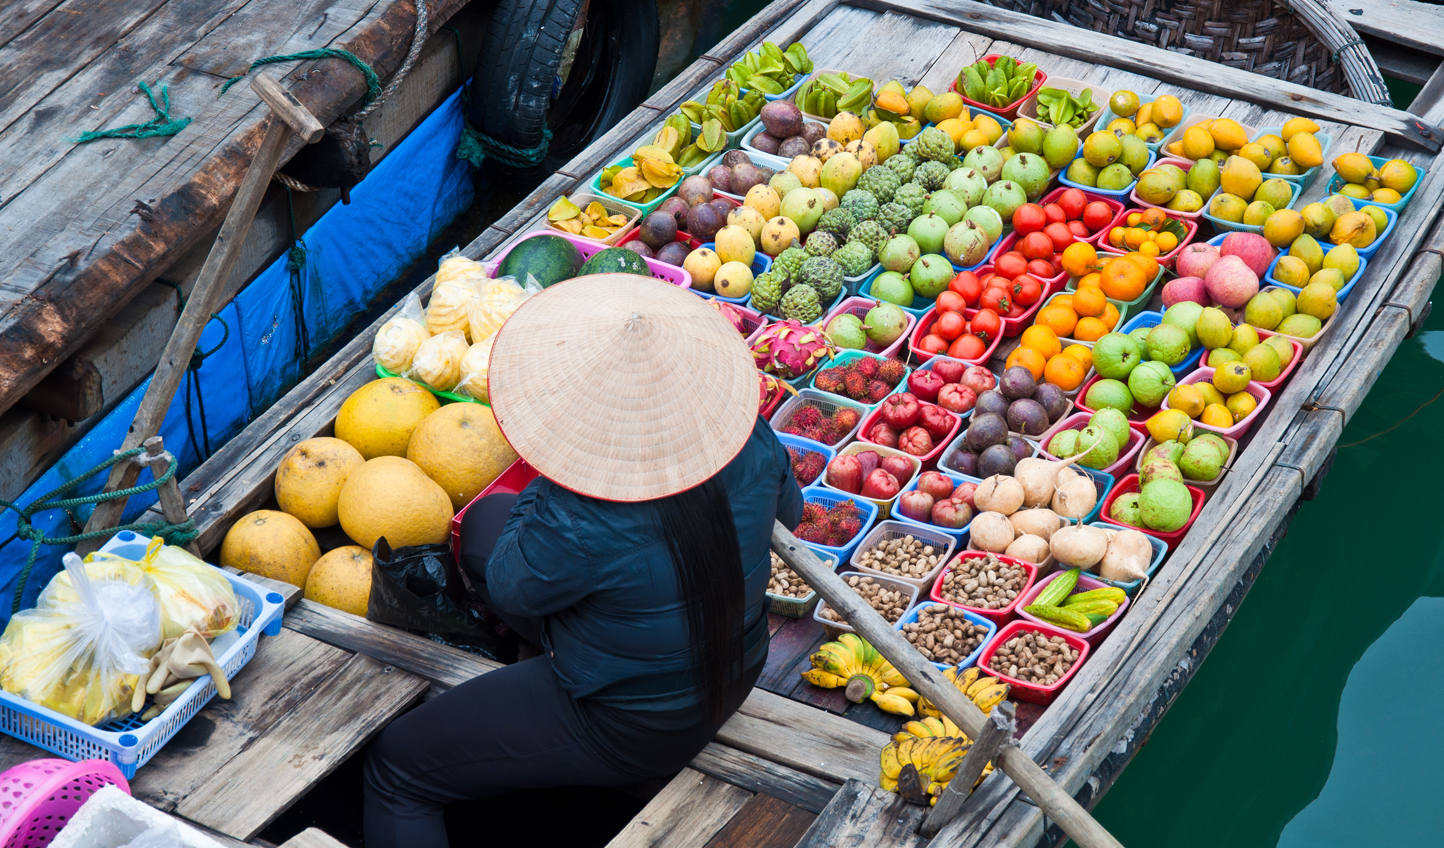 Visit a floating market and pick up fresh produce